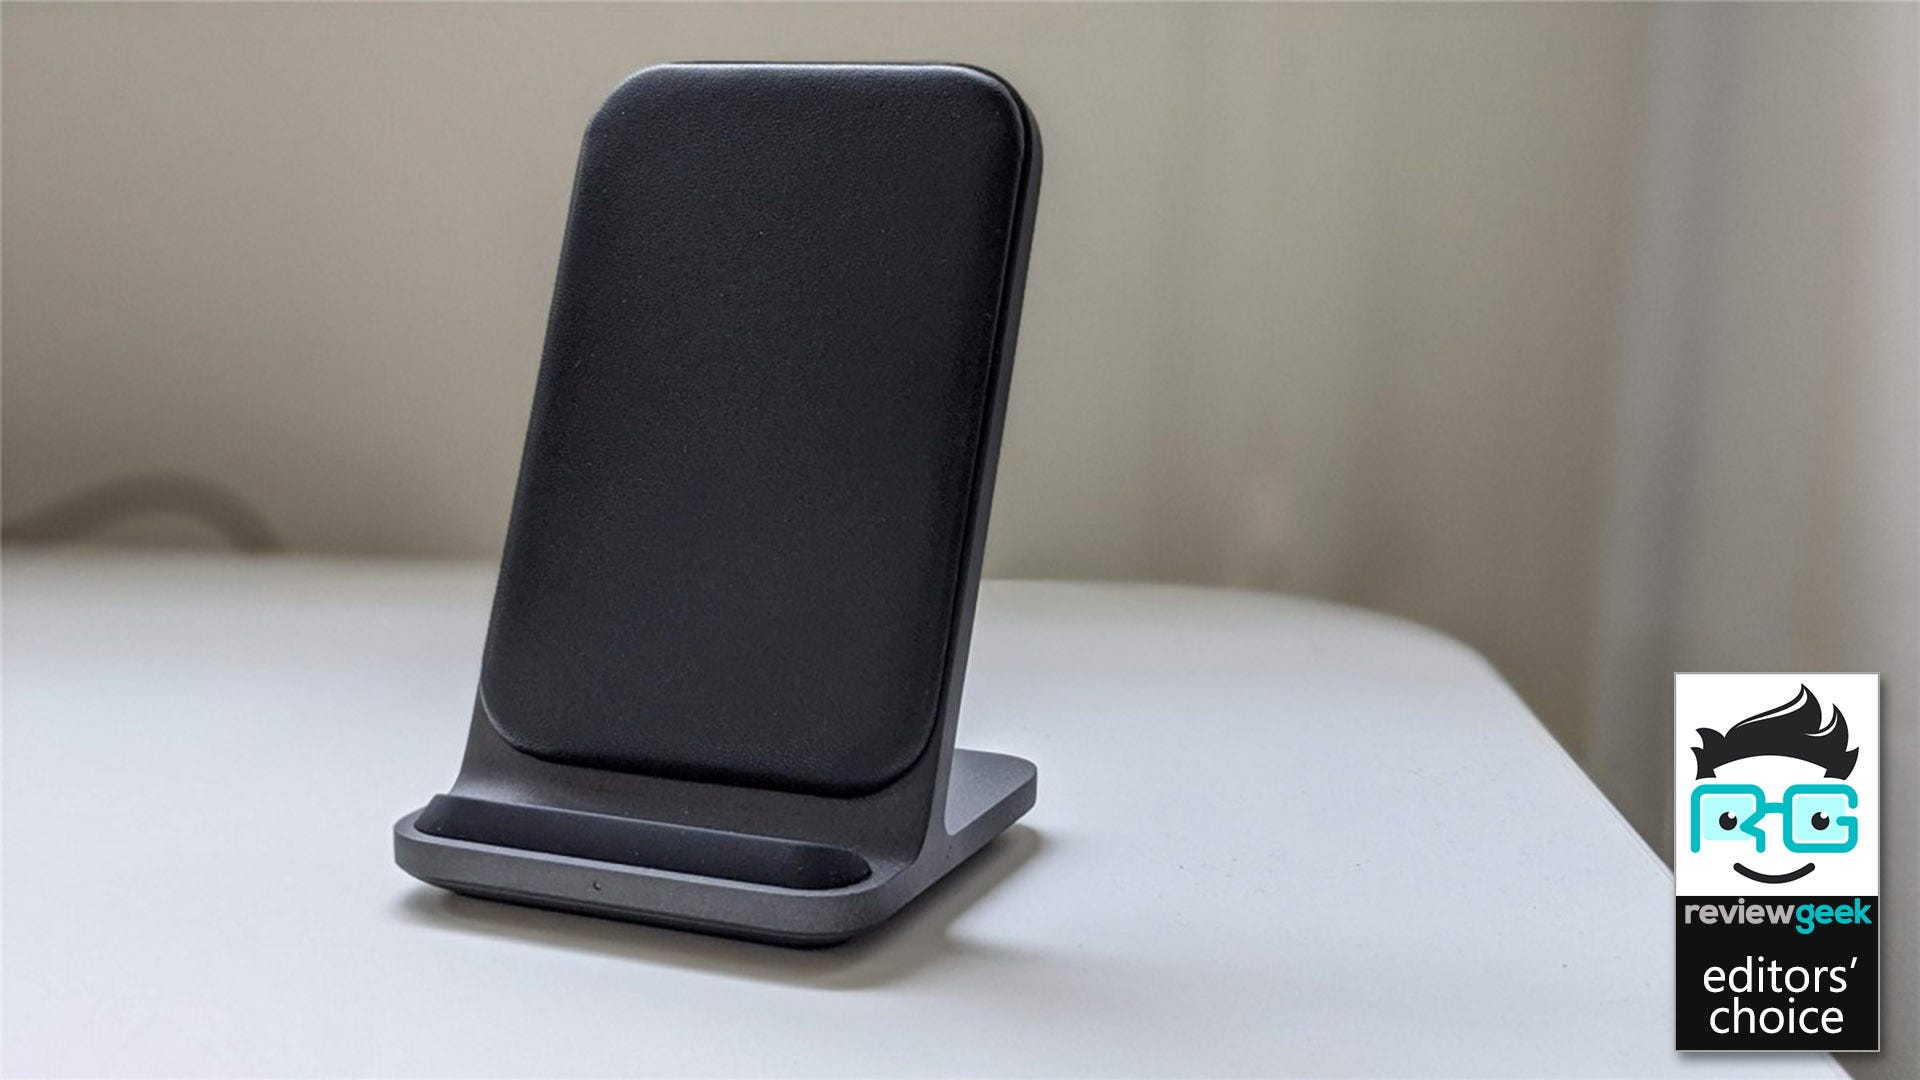 The Nomad Base Station Stand Is The Cadillac Of Wireless Charging Stands Review Geek